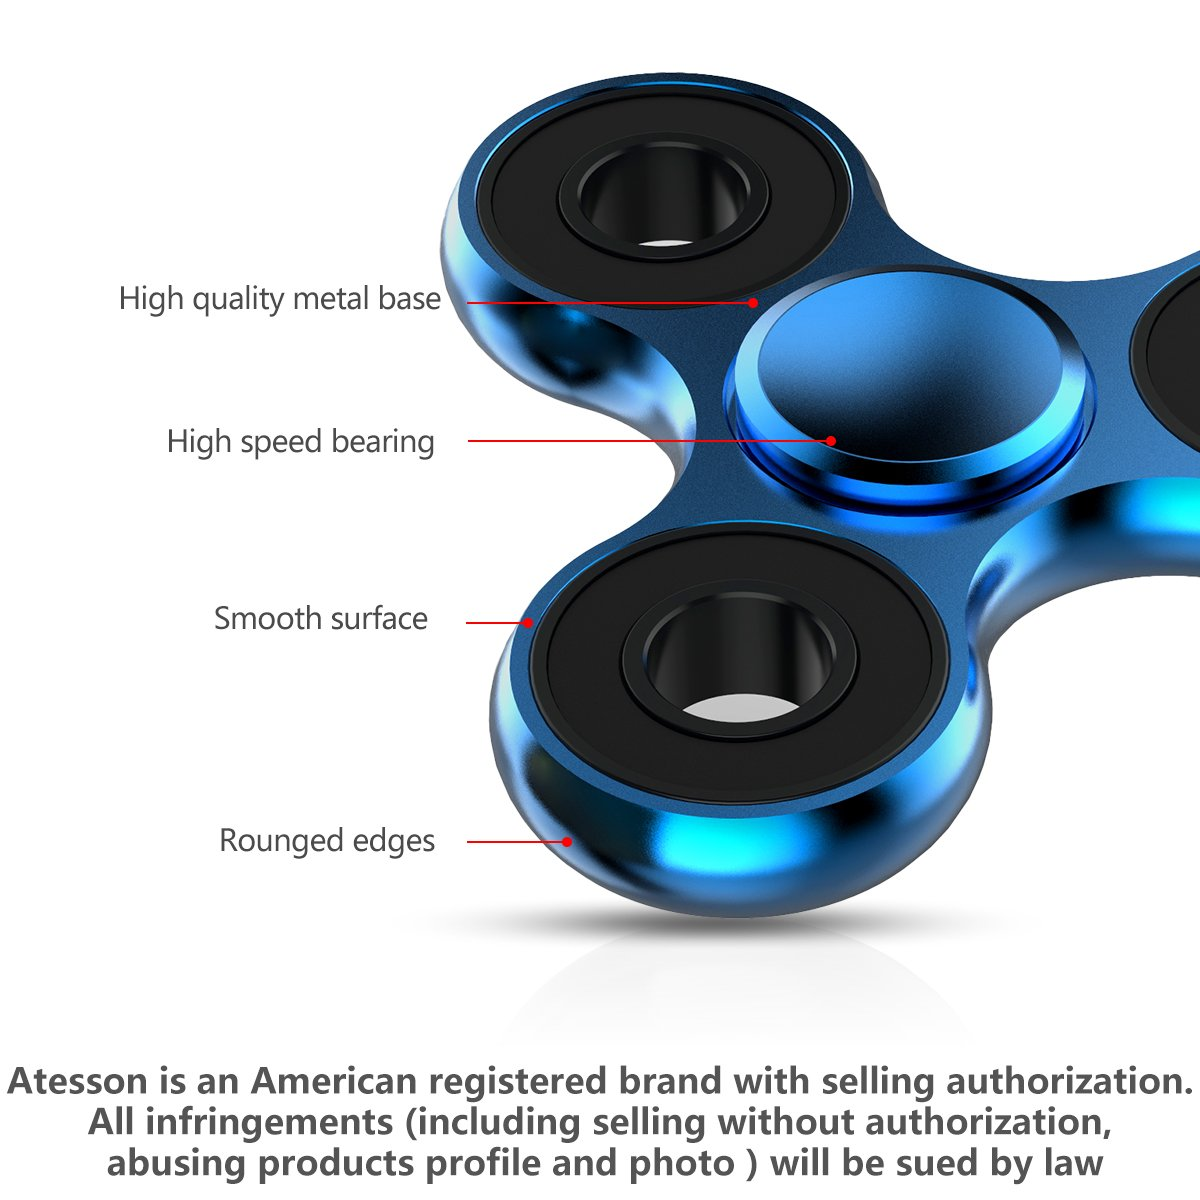 ATESSON Fidget Spinner Toy Ultra Durable Stainless Steel Bearing High Speed 1-5 Min Spins Precision Metal Material EDC ADHD Focus Anxiety Stress Relief Boredom Killing Time Toys